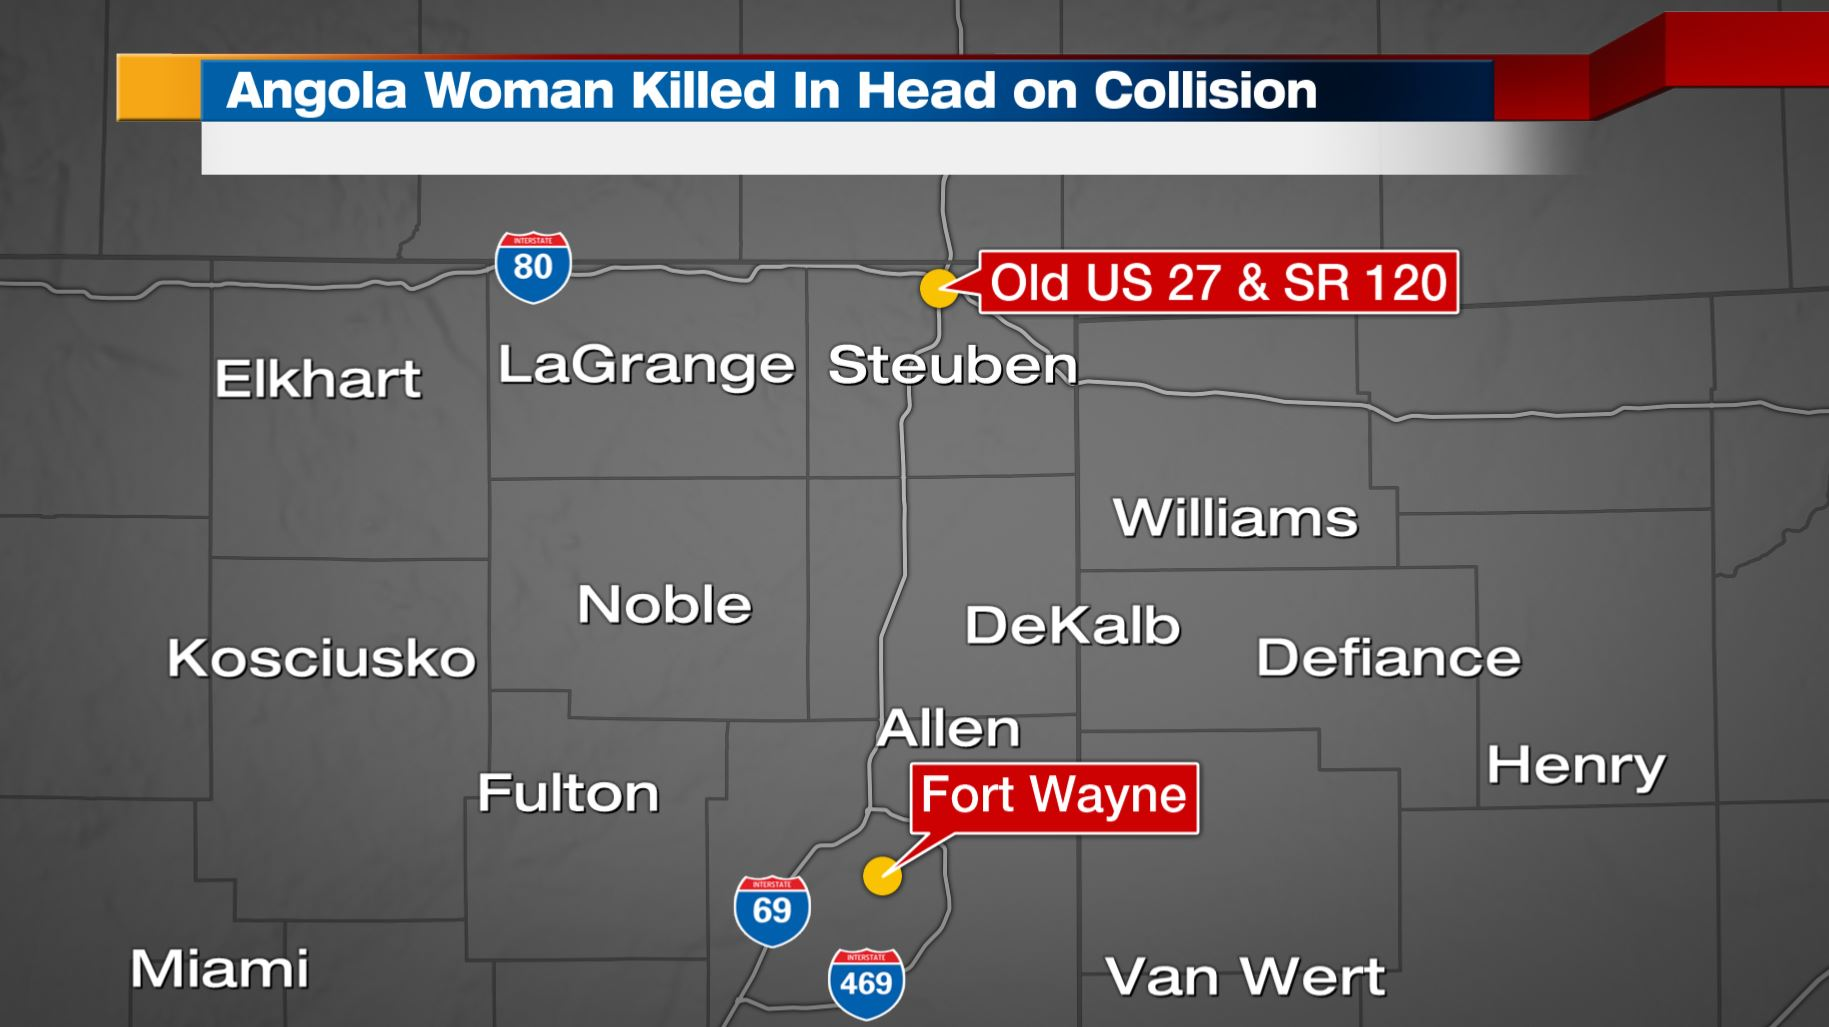 Angola Woman Dead In Head On Collision - Old-us-27-map